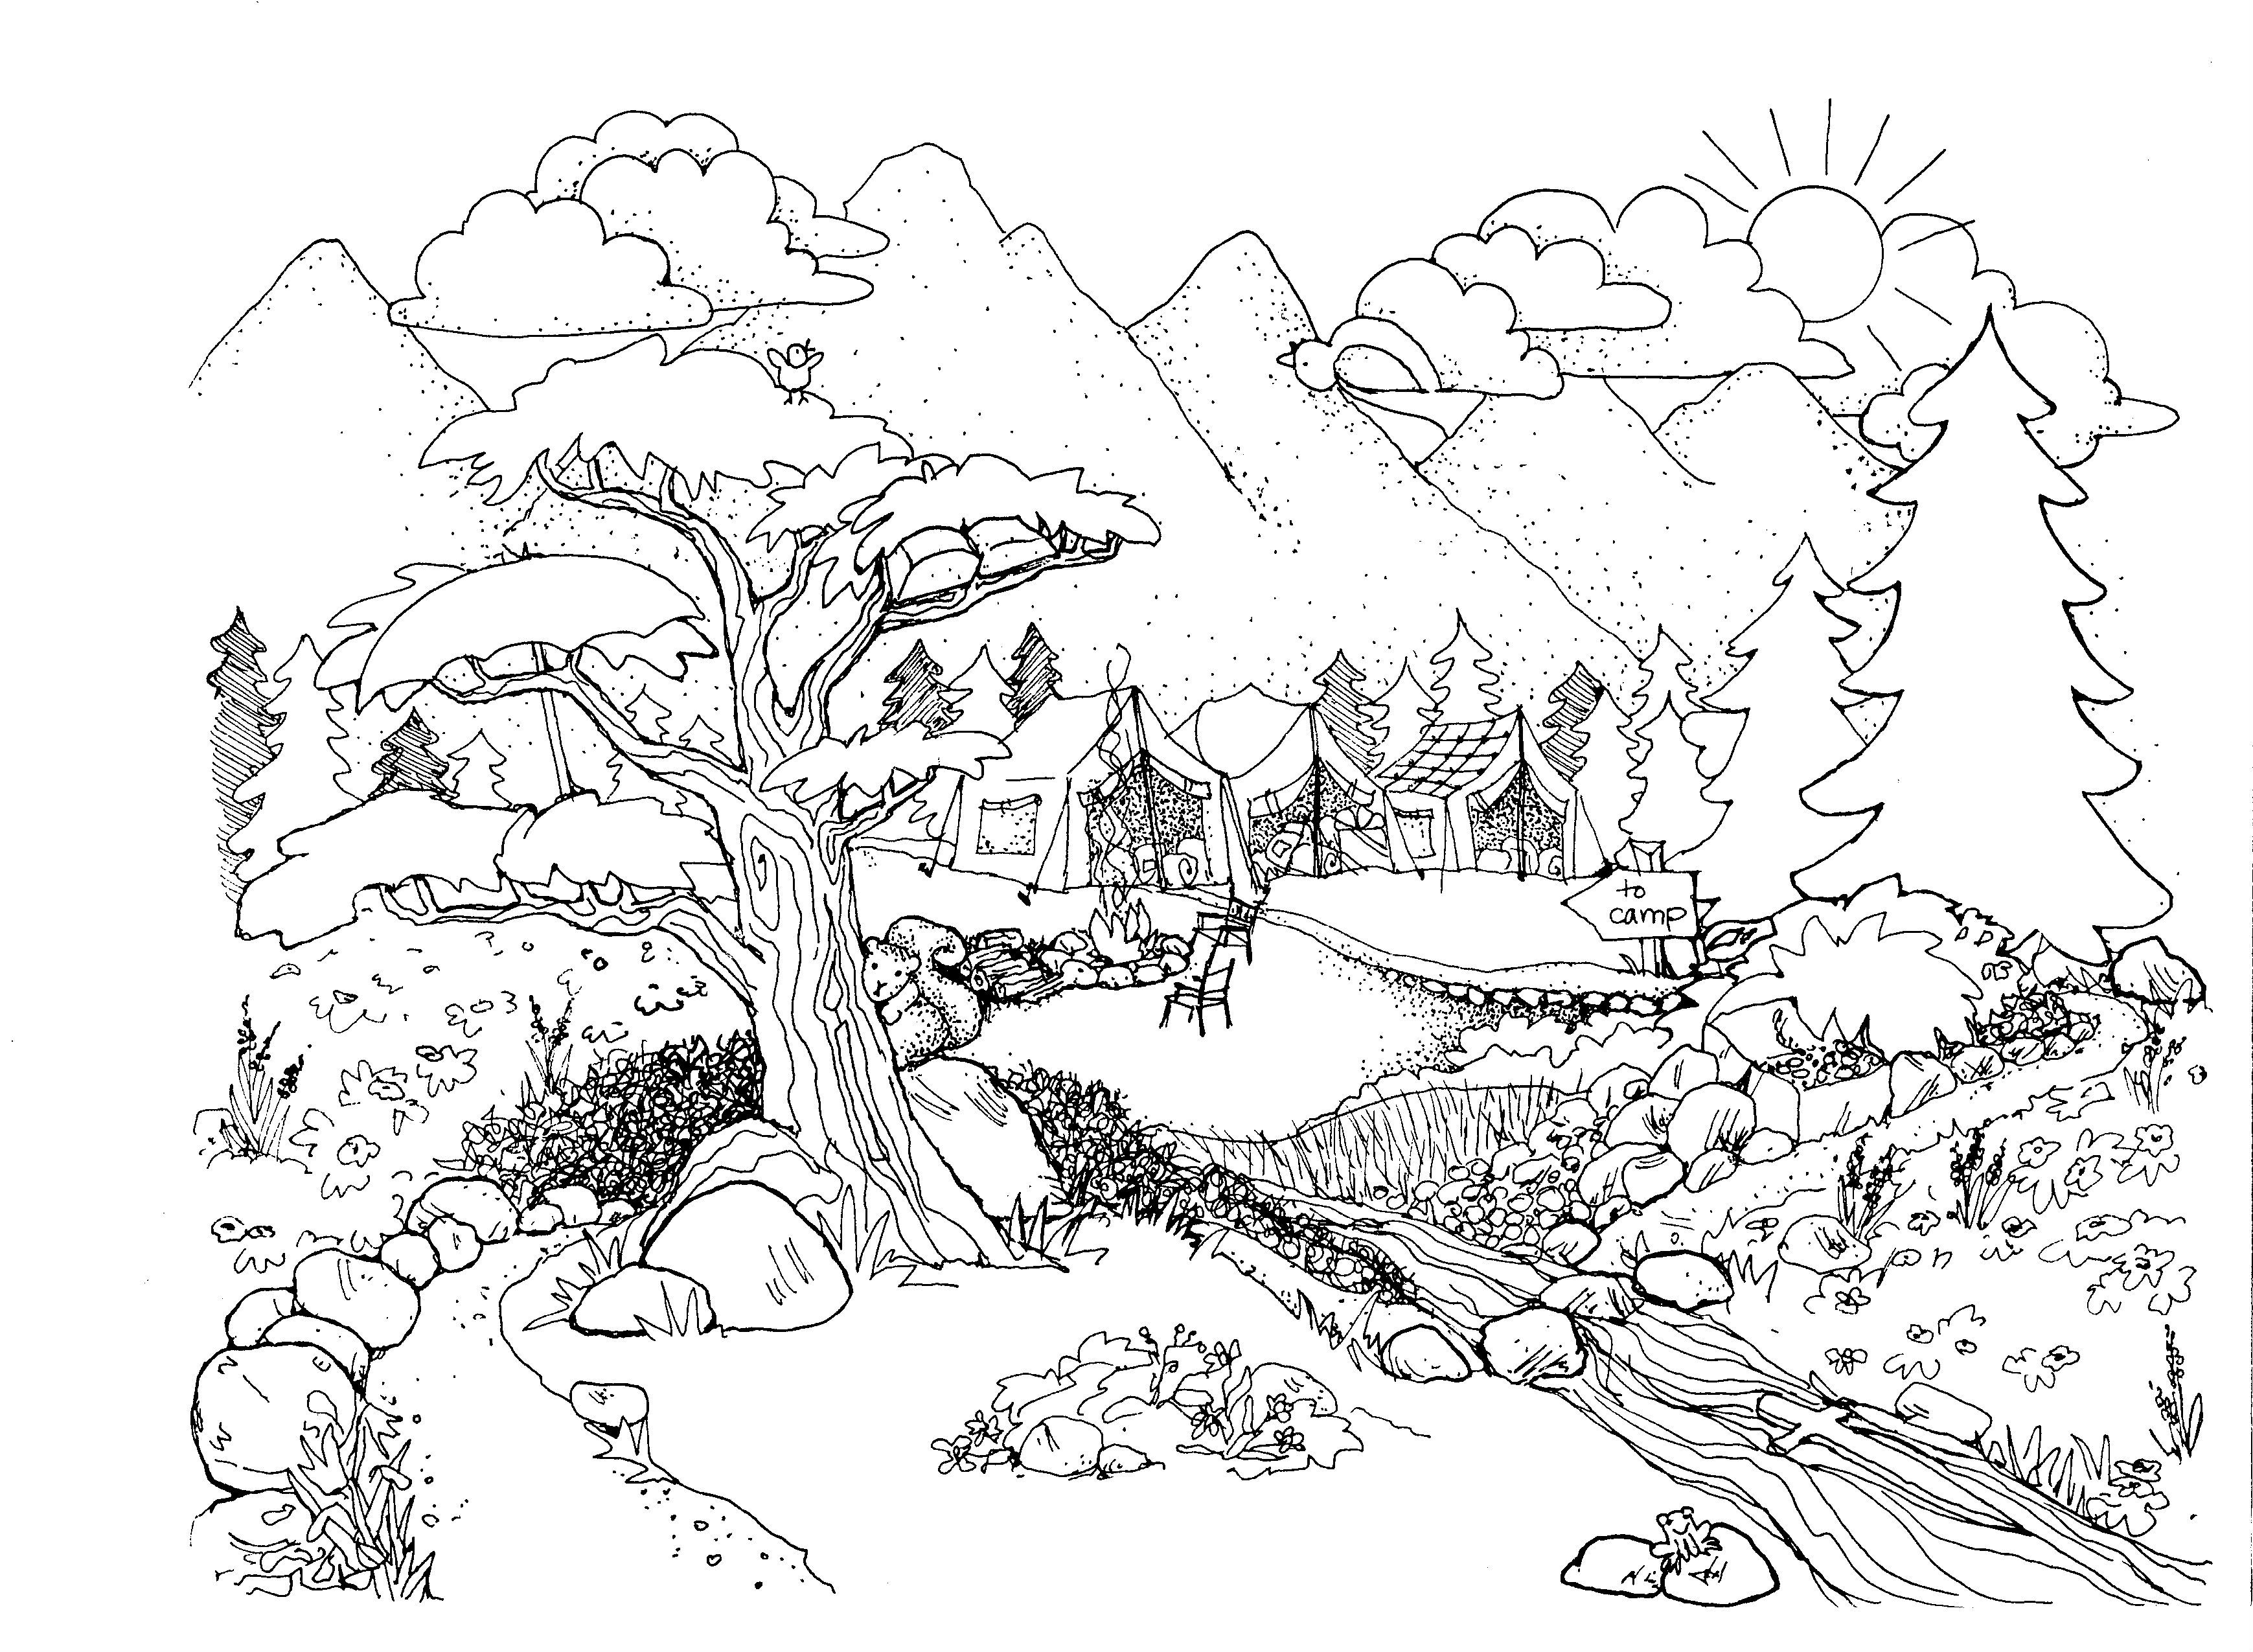 Environment Amazing (With images) | Coloring pages nature ...